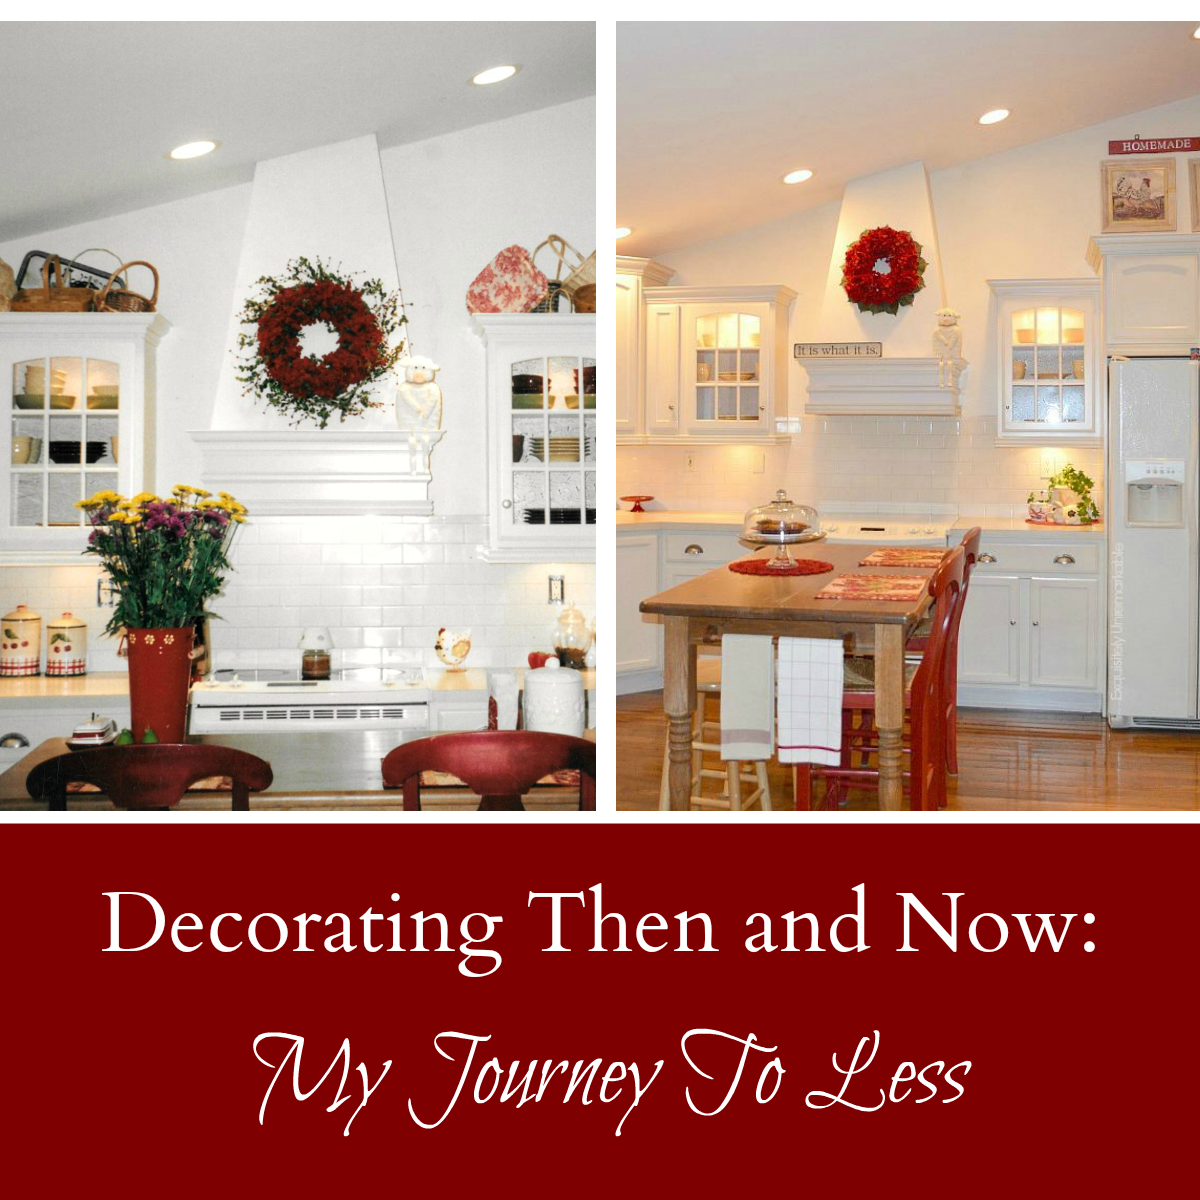 Decorating styles through the years.